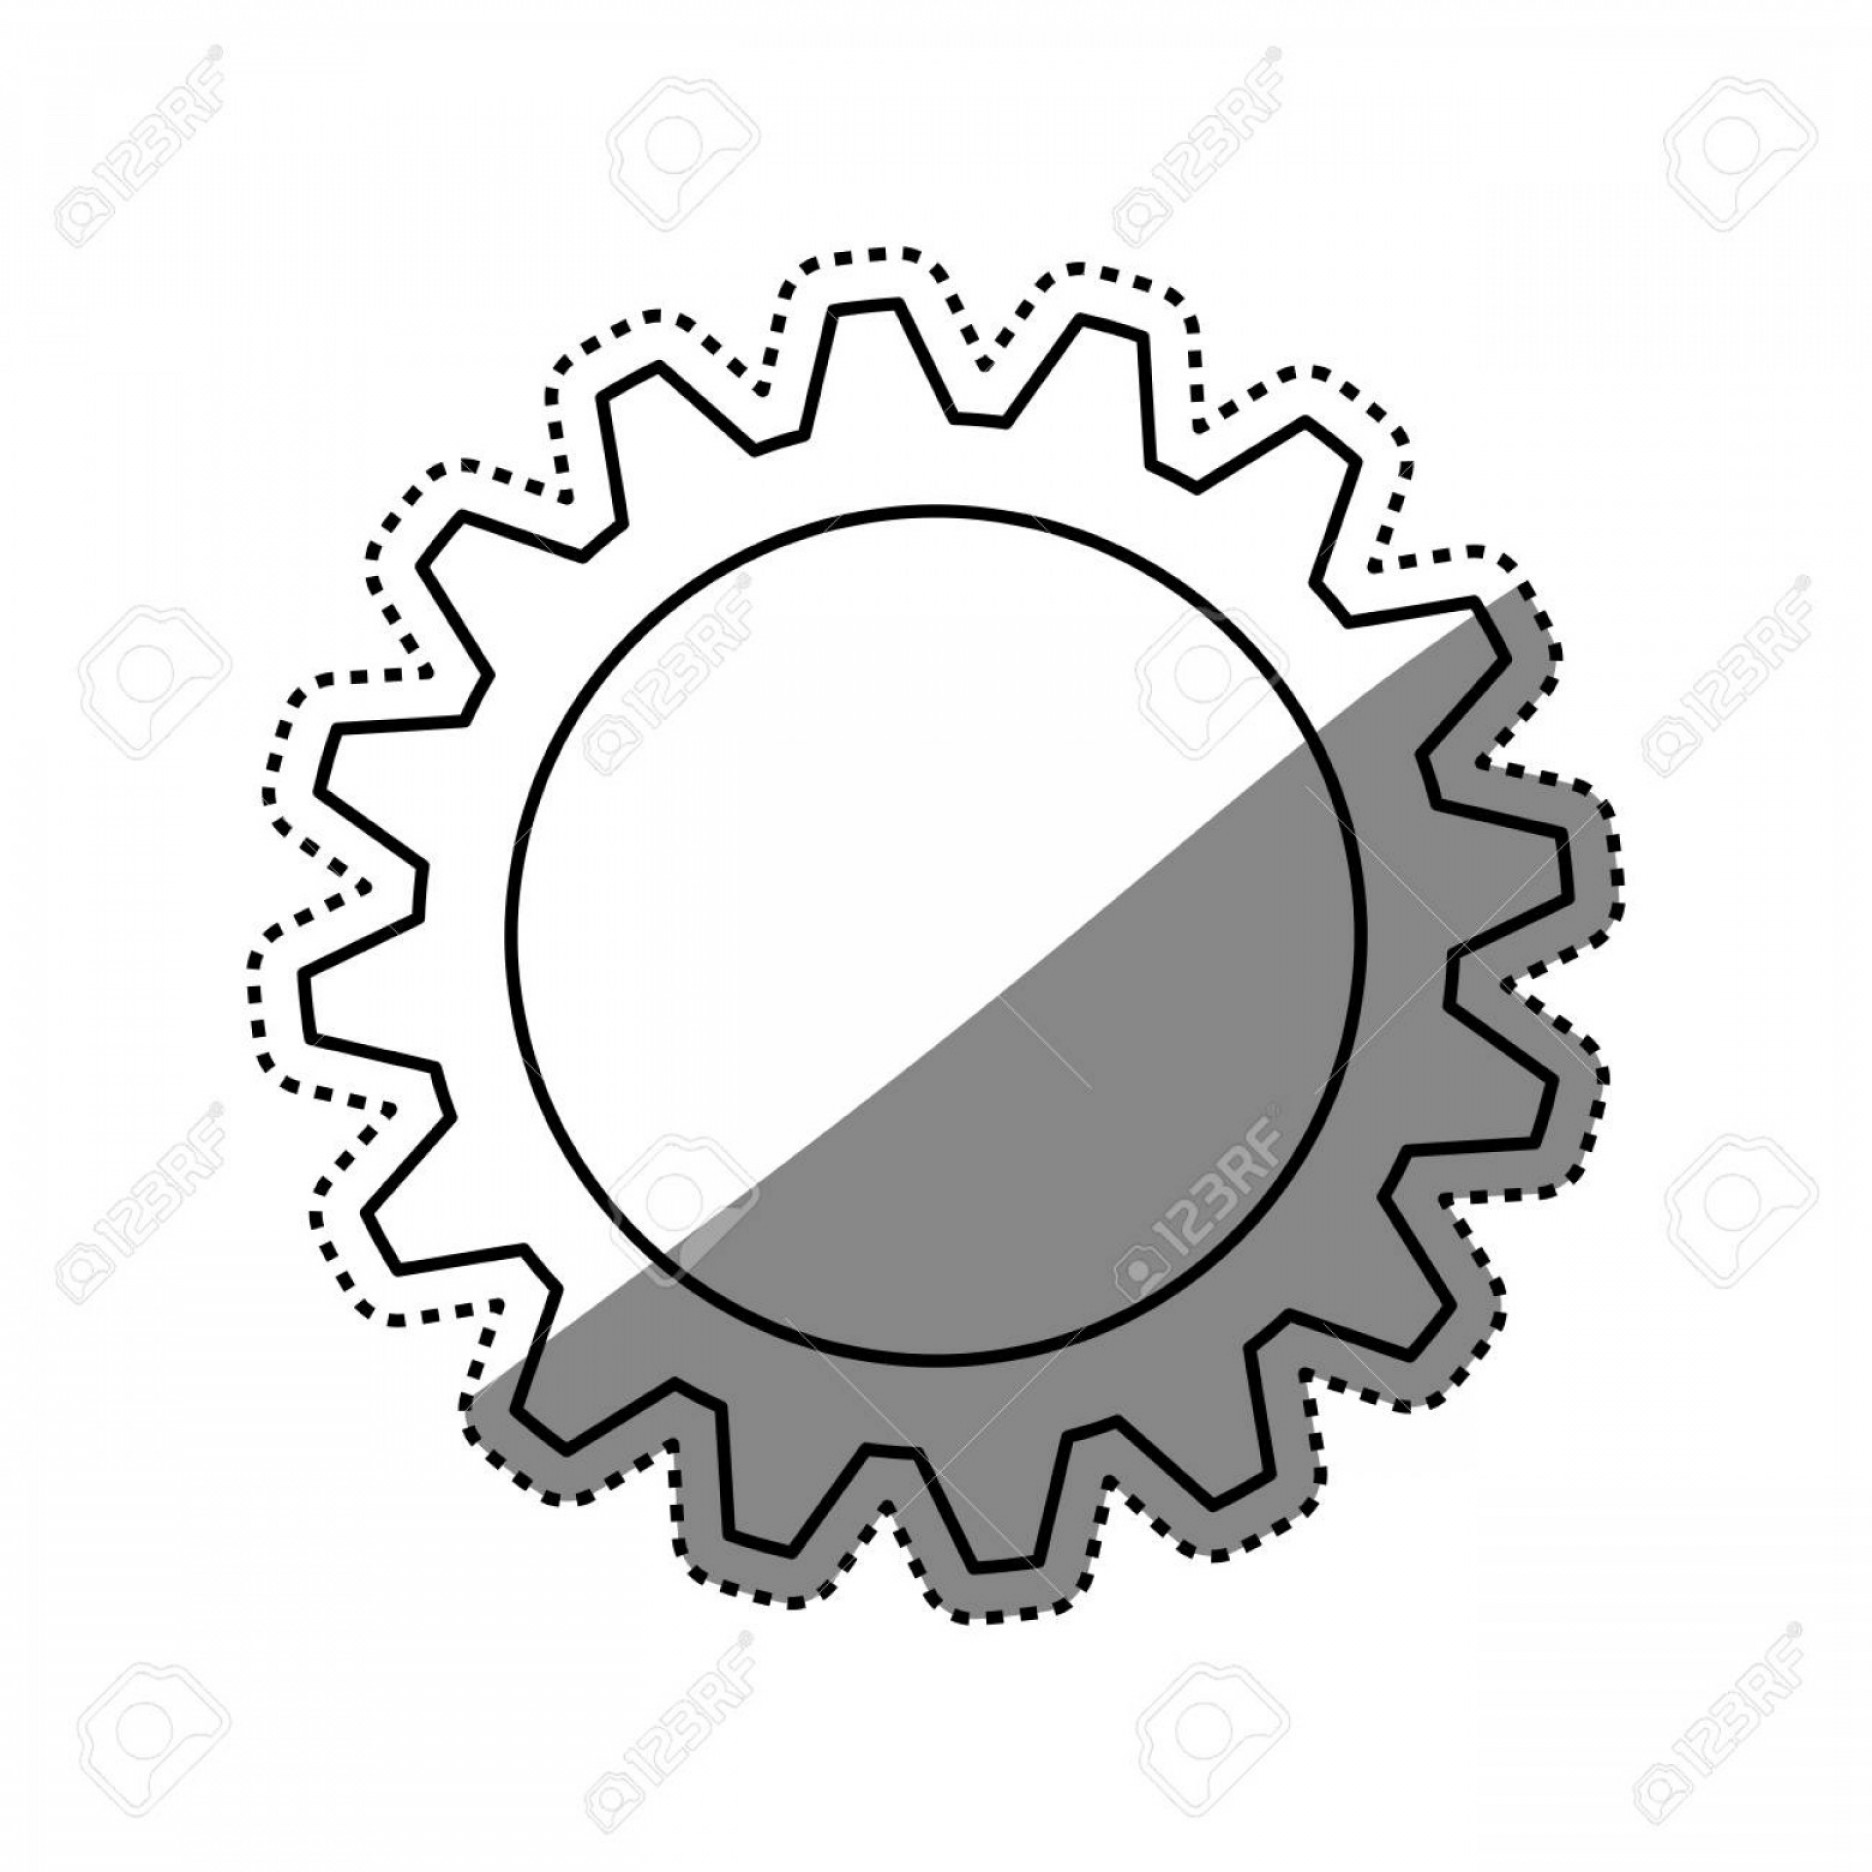 Vector Gear Graphics: Photostock Vector Gear Machinery Piece Icon Vector Illustration Graphic Design